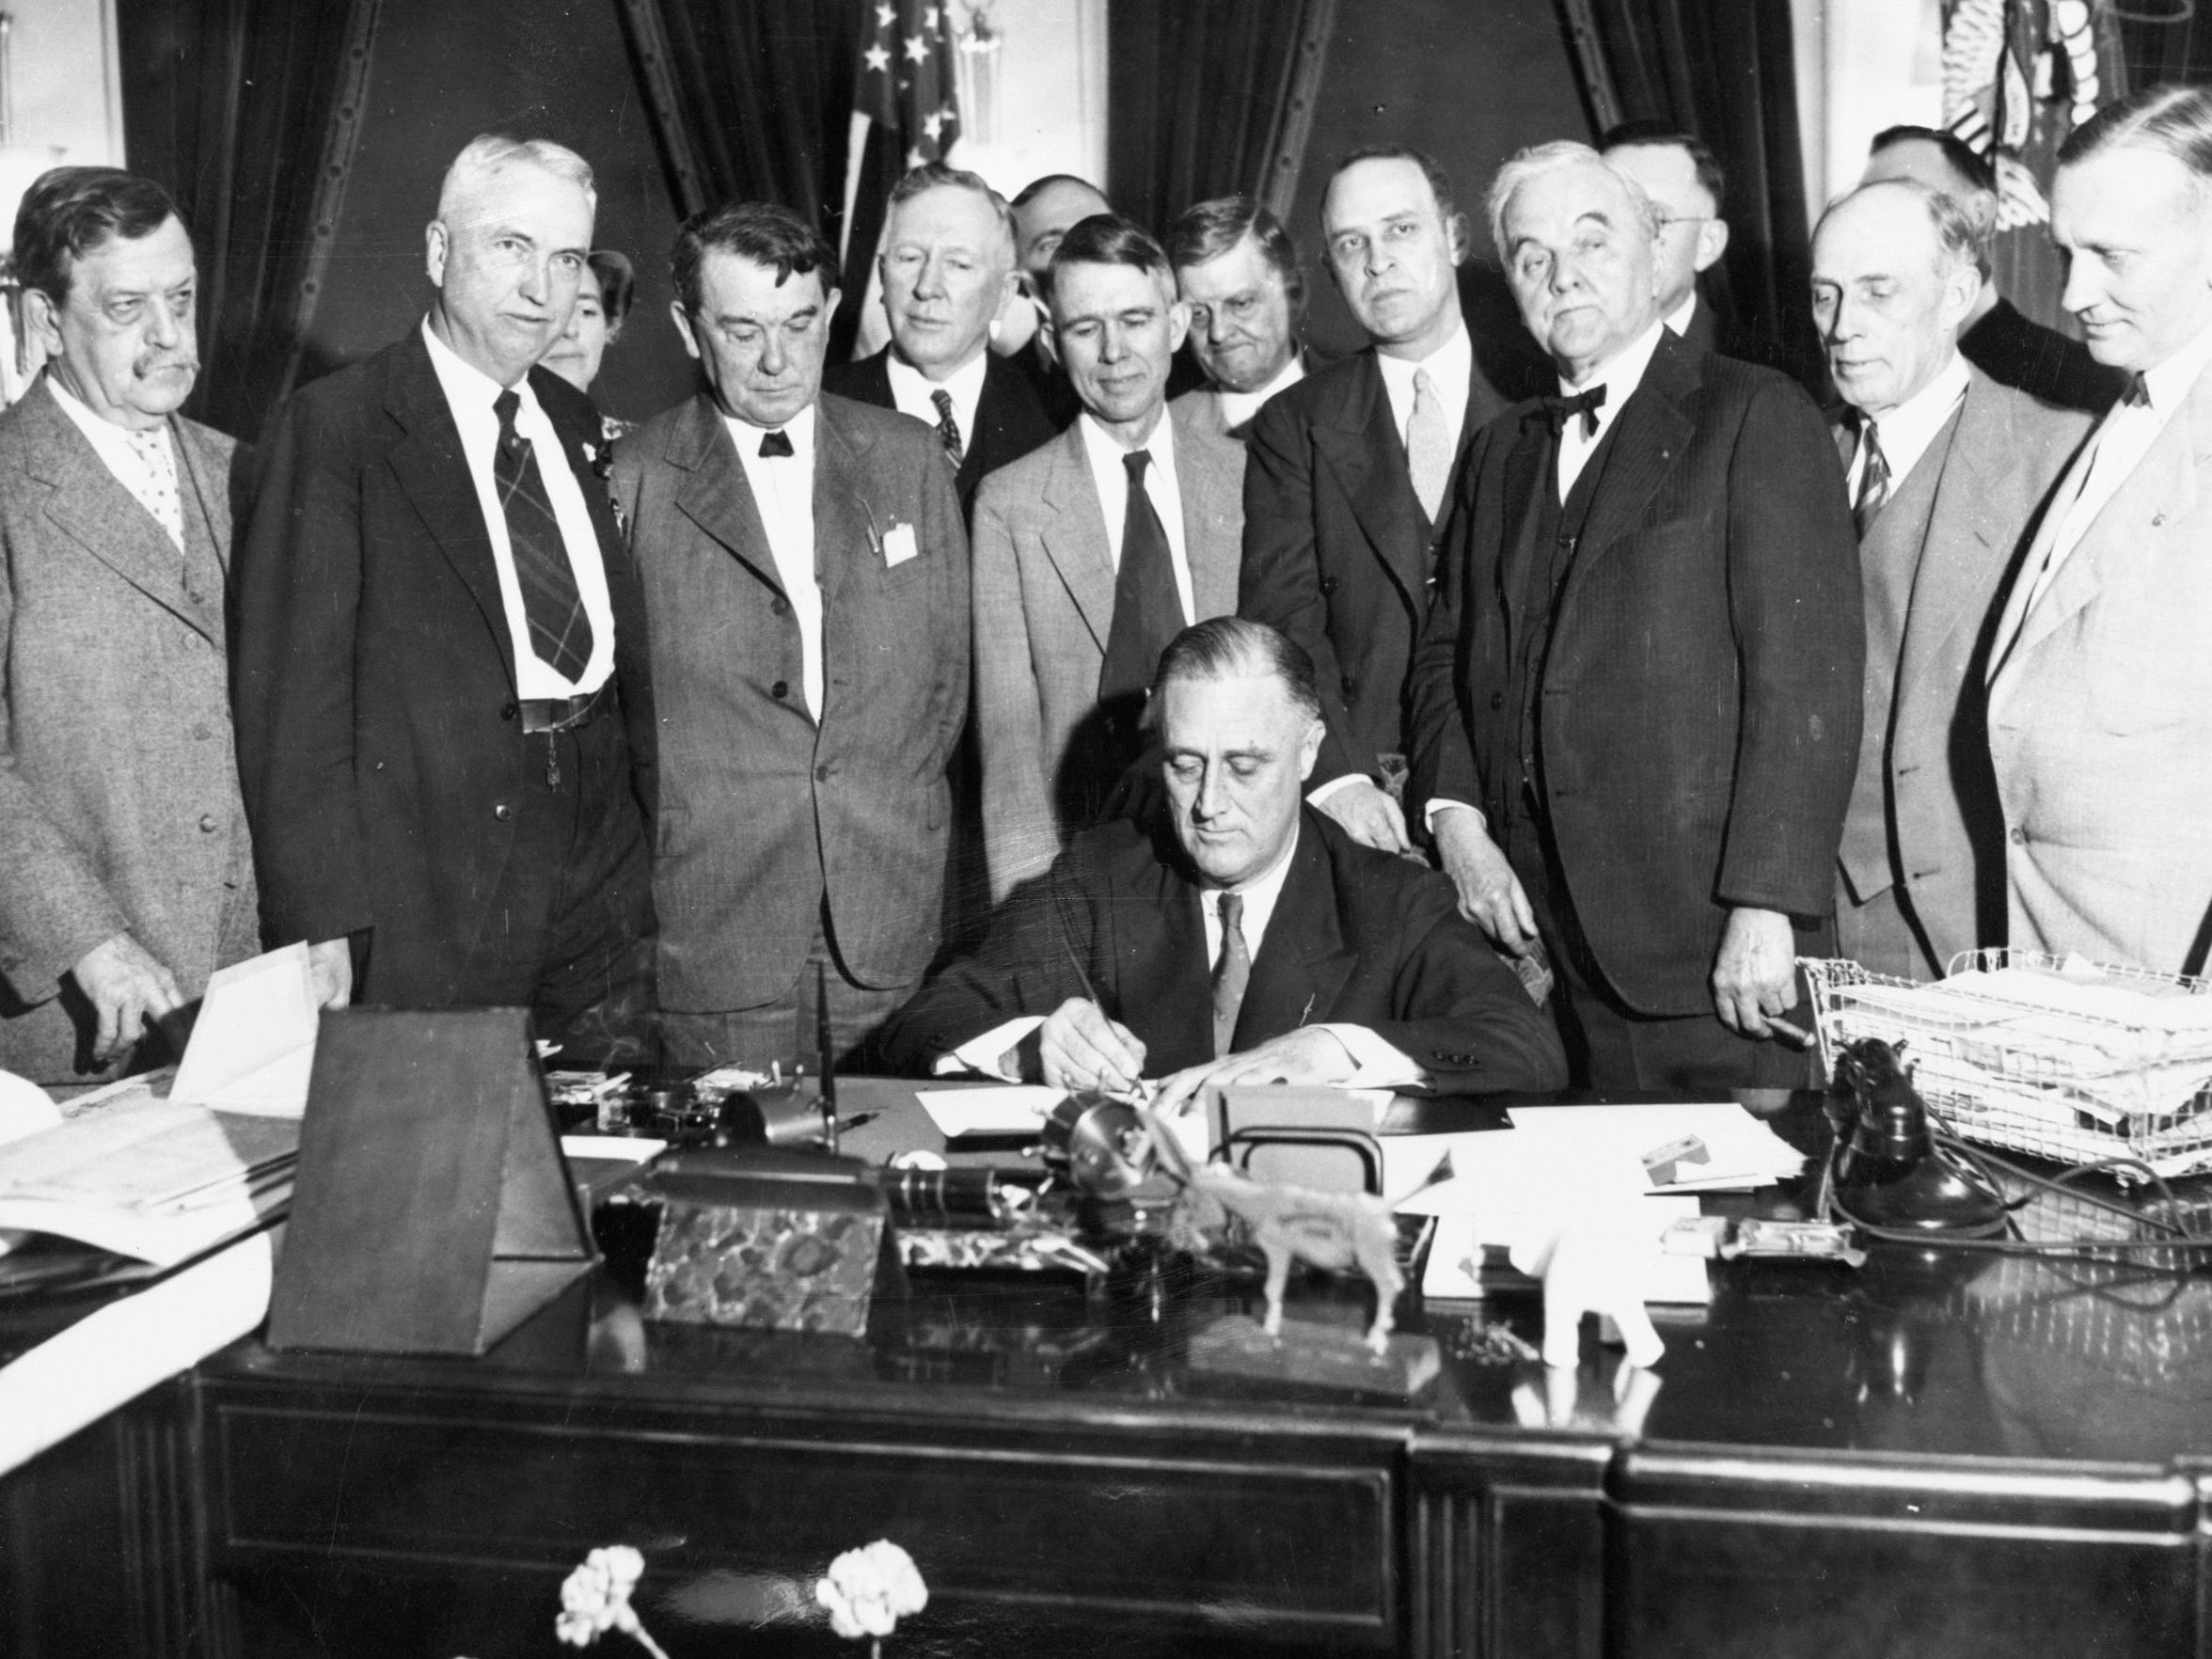 President Franklin D. Roosevelt signs the TVA Act on May 18, 1933. The president is surrounded by members of Congress from the TVA region, and at his left shoulder is Sen. George Norris of Nebraska, after whom Norris Dam is named.